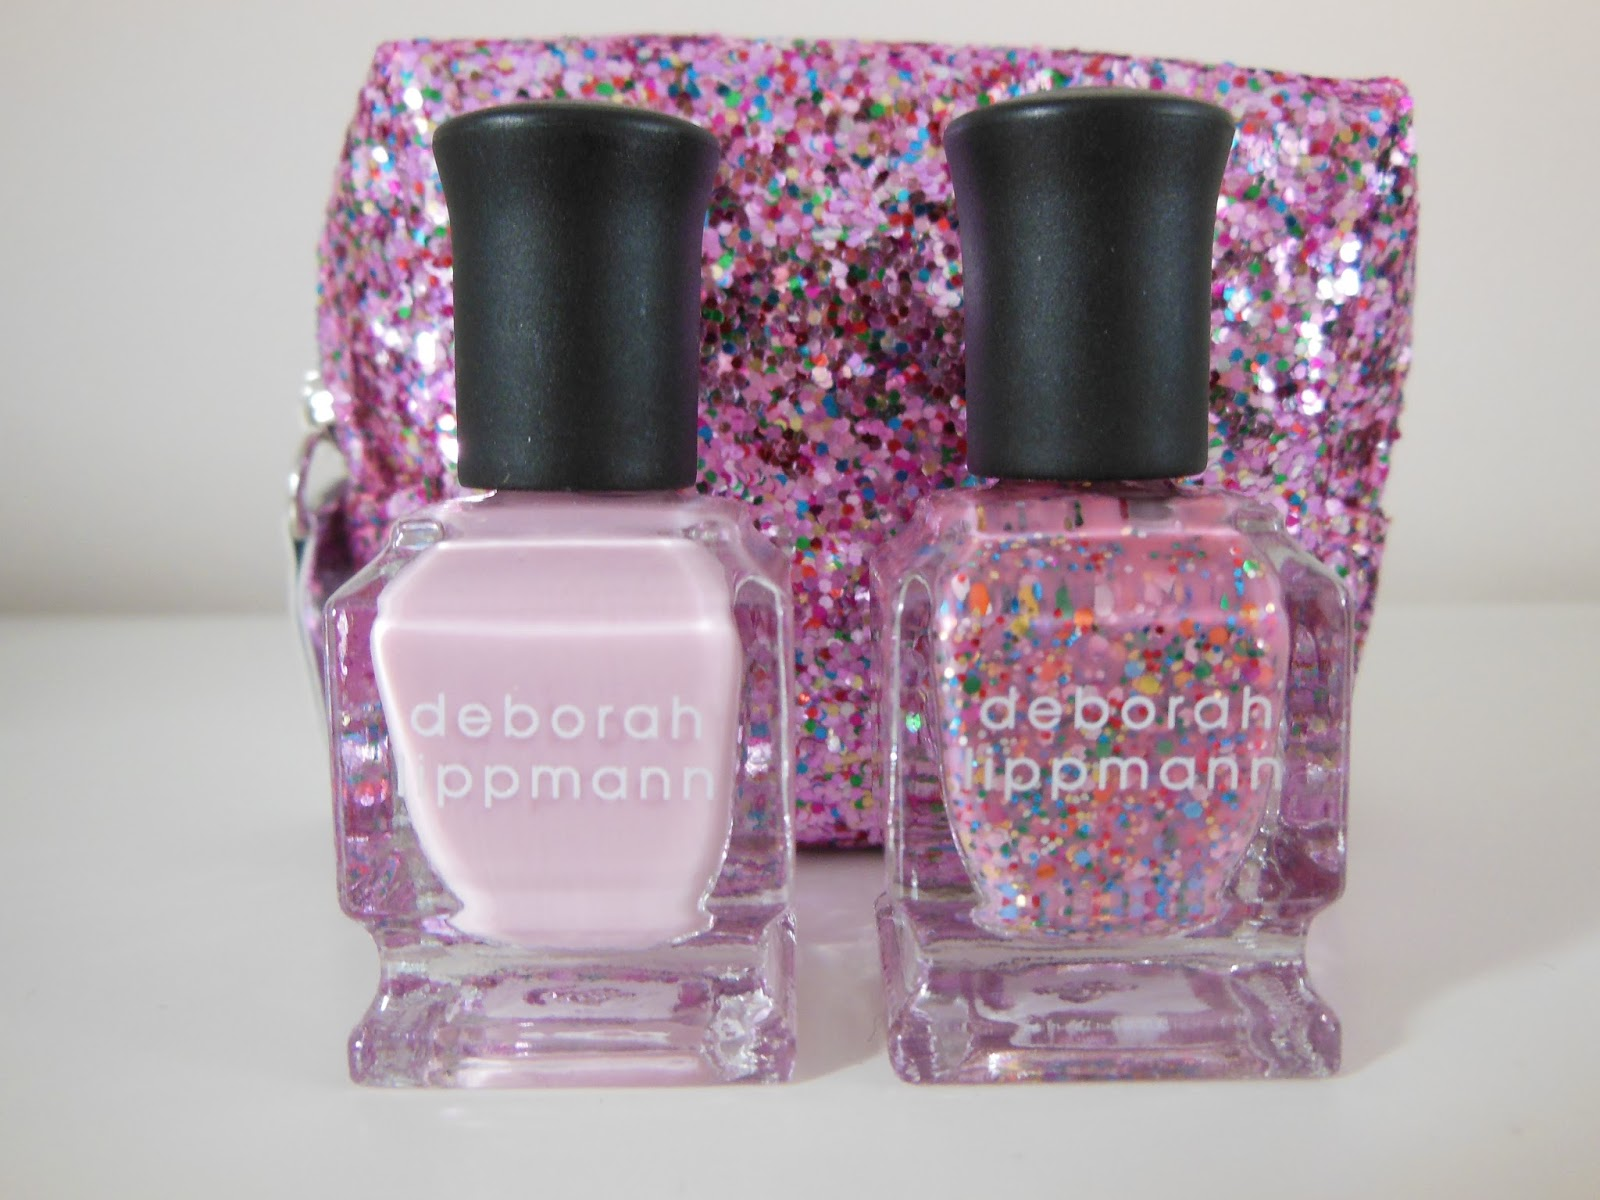 Deborah Lippmann two of hearts nail polish duo